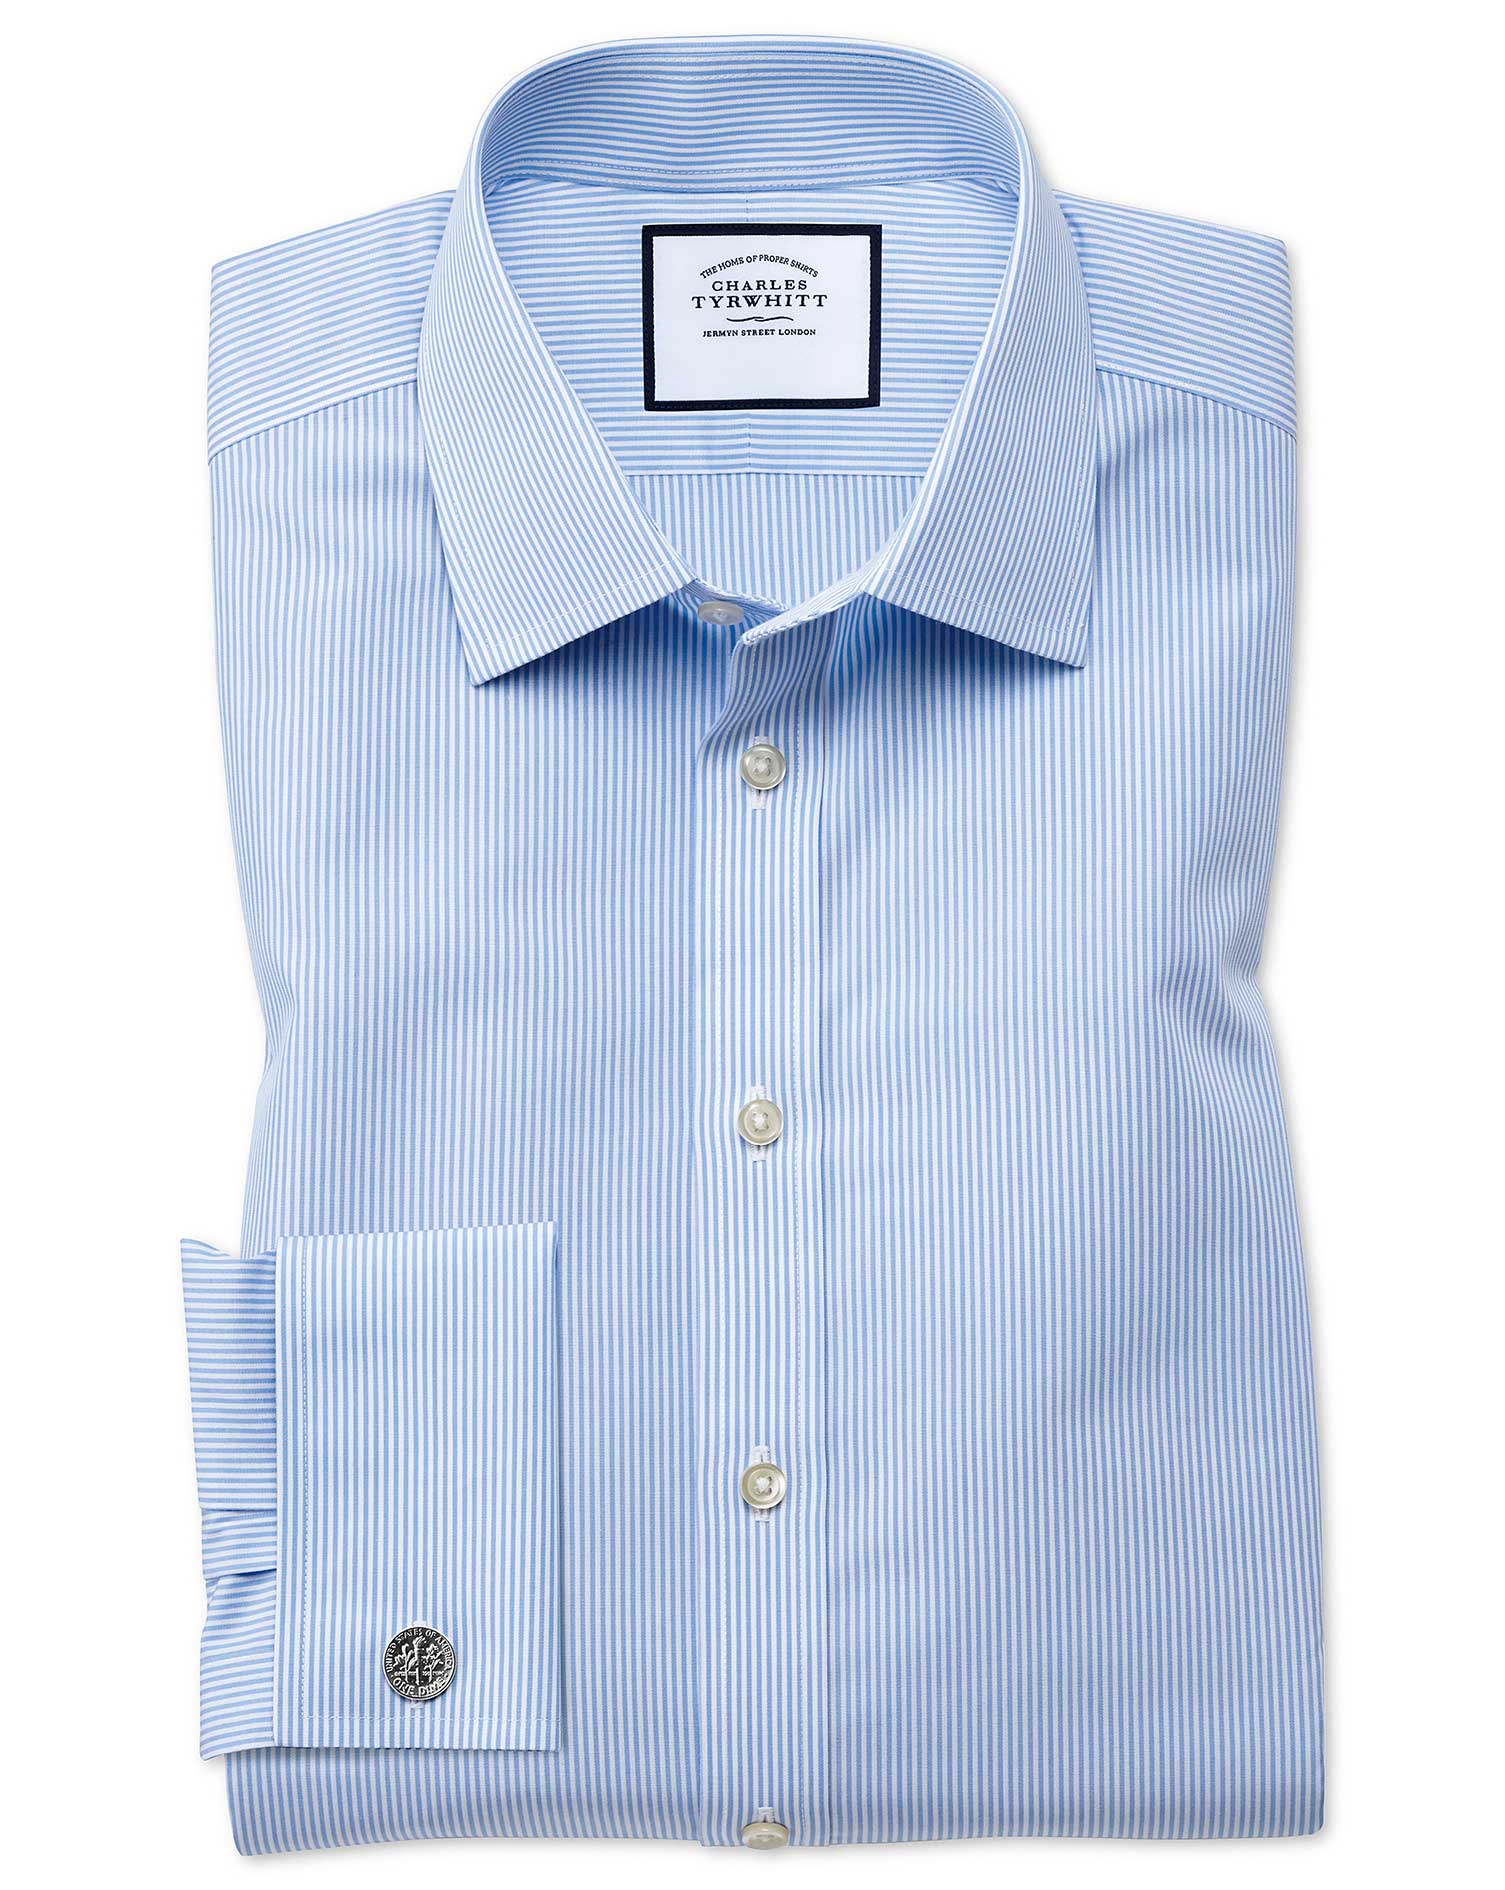 Extra Slim Fit Non-Iron Bengal Stripe Sky Blue Cotton Formal Shirt Double Cuff Size 17/35 by Charles